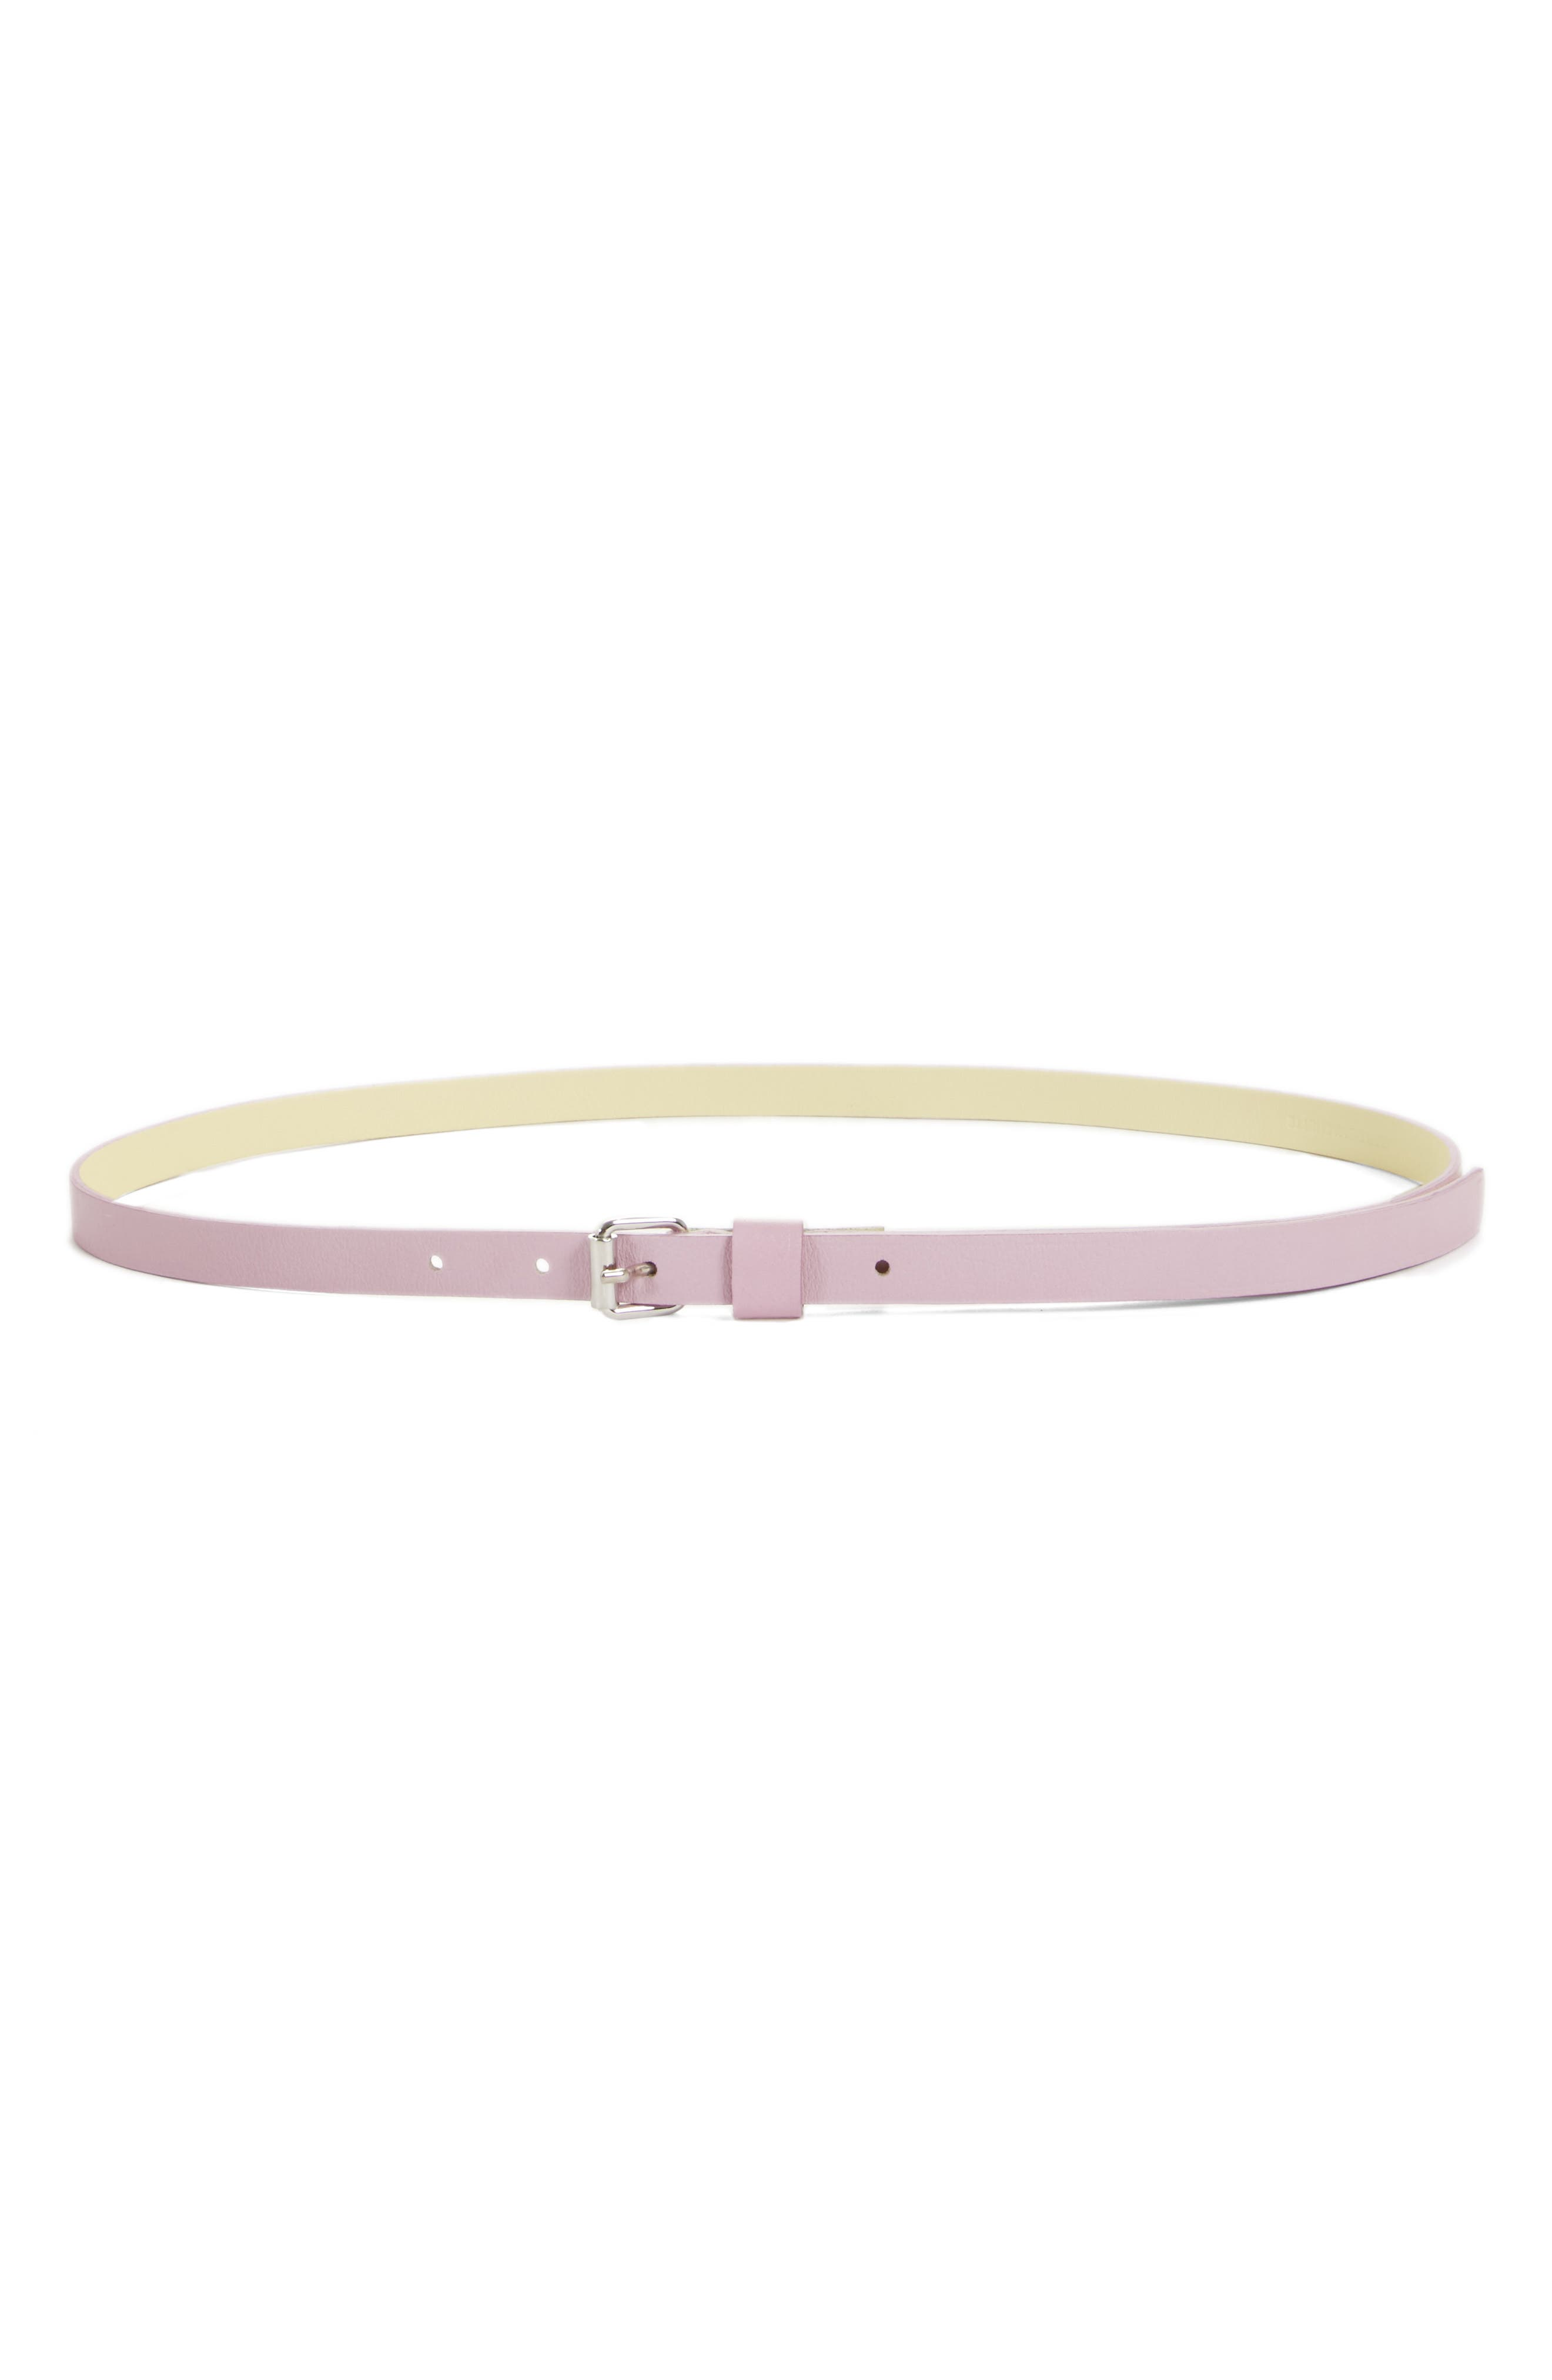 Leather Skinny Belt,                             Main thumbnail 1, color,